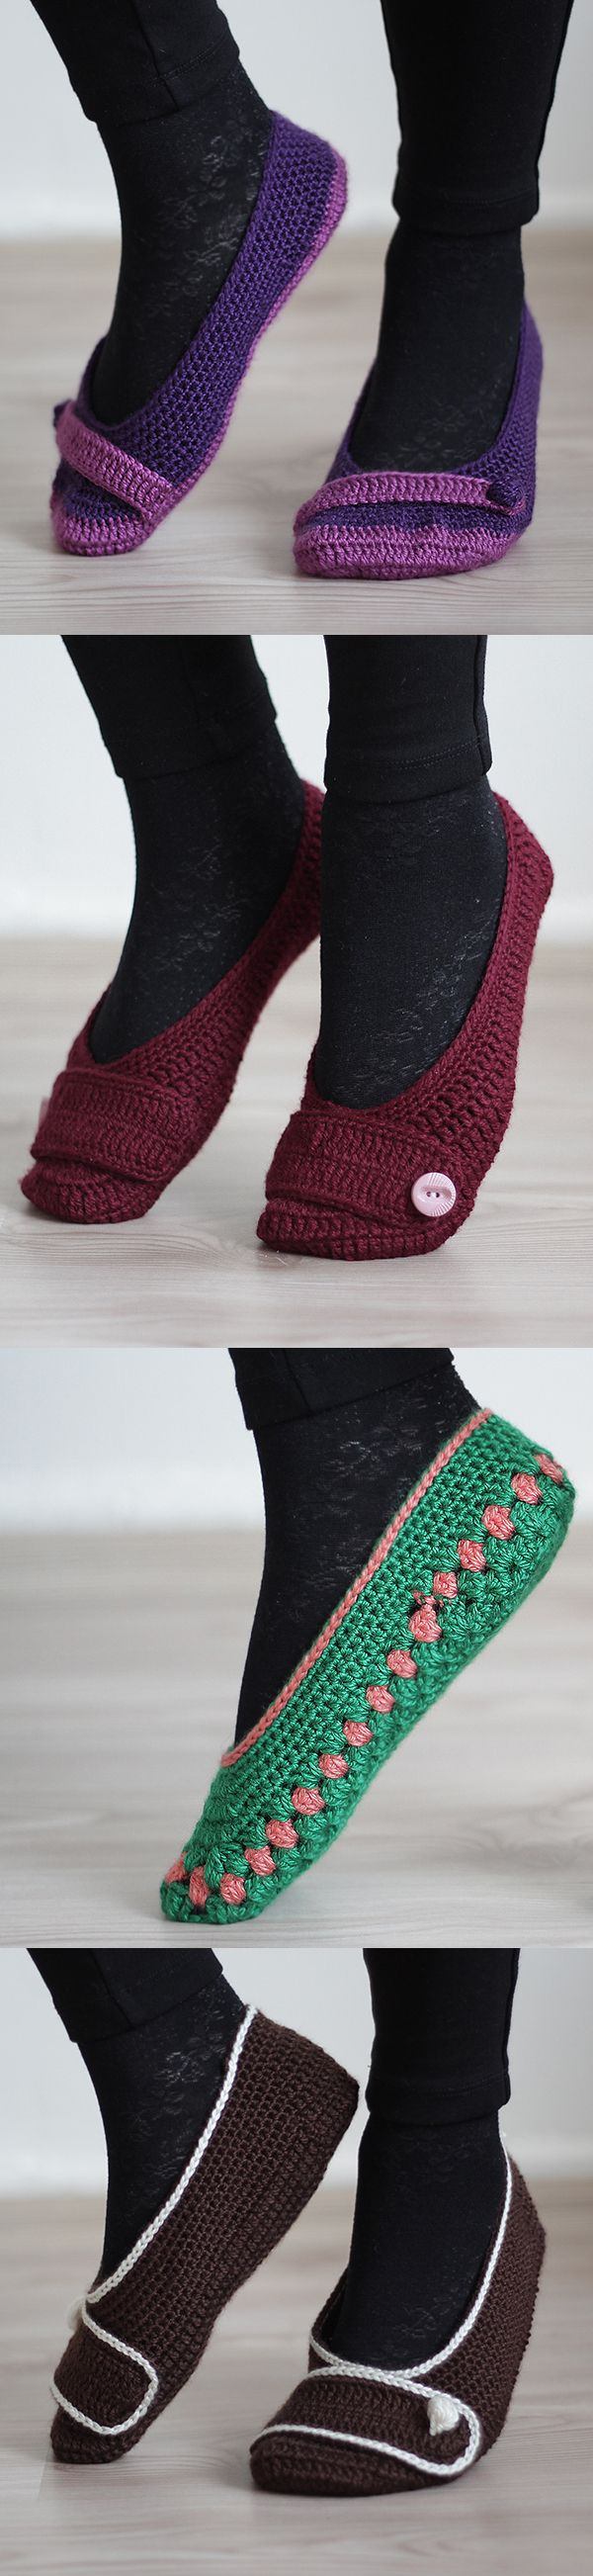 Women socks, Handmade Slippers, Knitted slippers, Authentic footwear, Stylish foot wear, green slippers